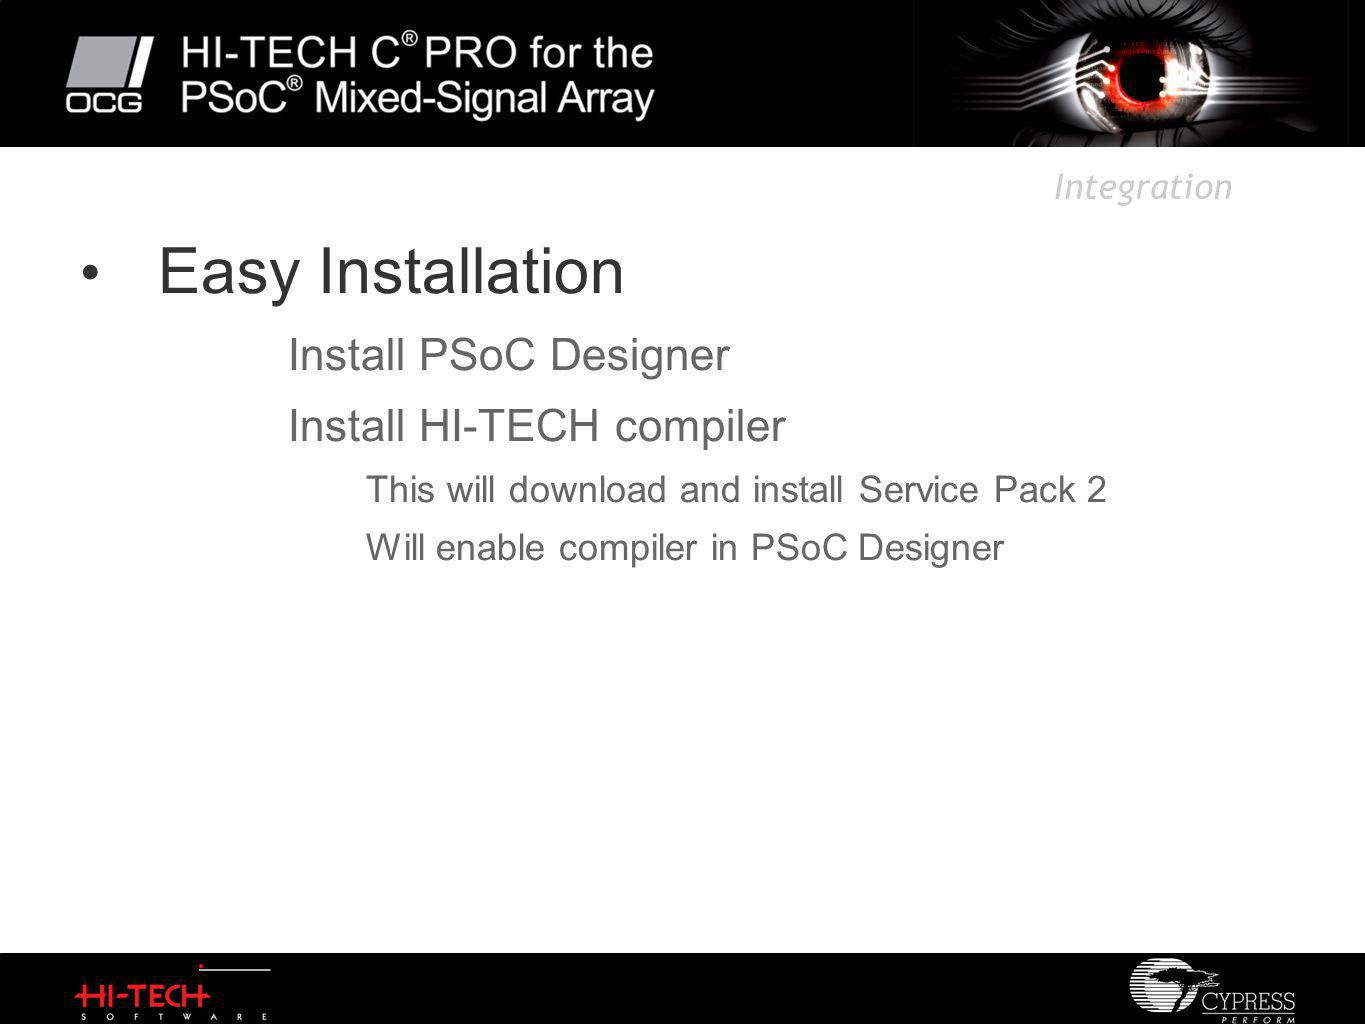 Integration Easy Installation Install PSoC Designer Install HI-TECH compiler This will download and install Service Pack 2 Will enable compiler in PSoC Designer